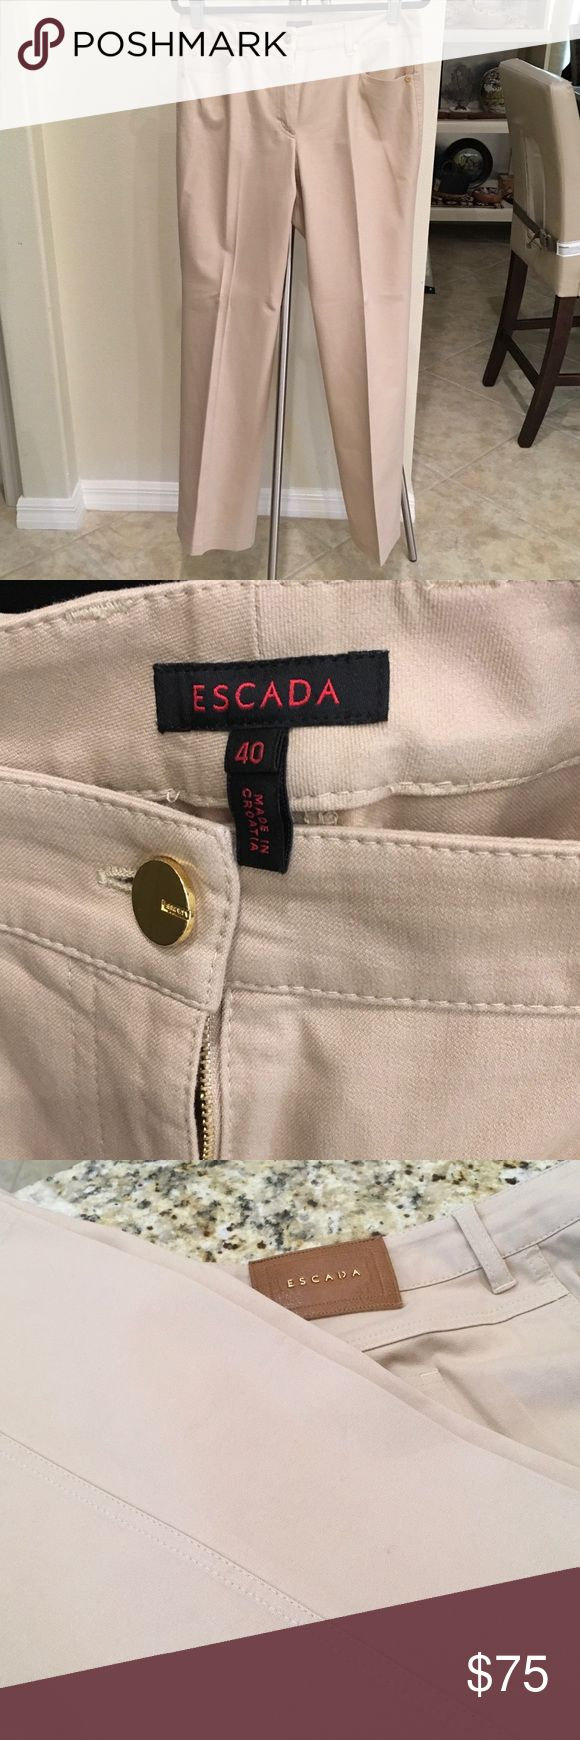 """Escada 5 Pocket Stretch Denim Jeans Beige Size 40 Authentic Escada jeans in stretch denim (95% cotton) with 5 pockets. Stitch detailing down legs; mid rise, straight leg. Inseam is about 32"""". Very good condition with no rips, tears, stains. Fresh from dry cleaners and a non smoking home. Escada Jeans"""